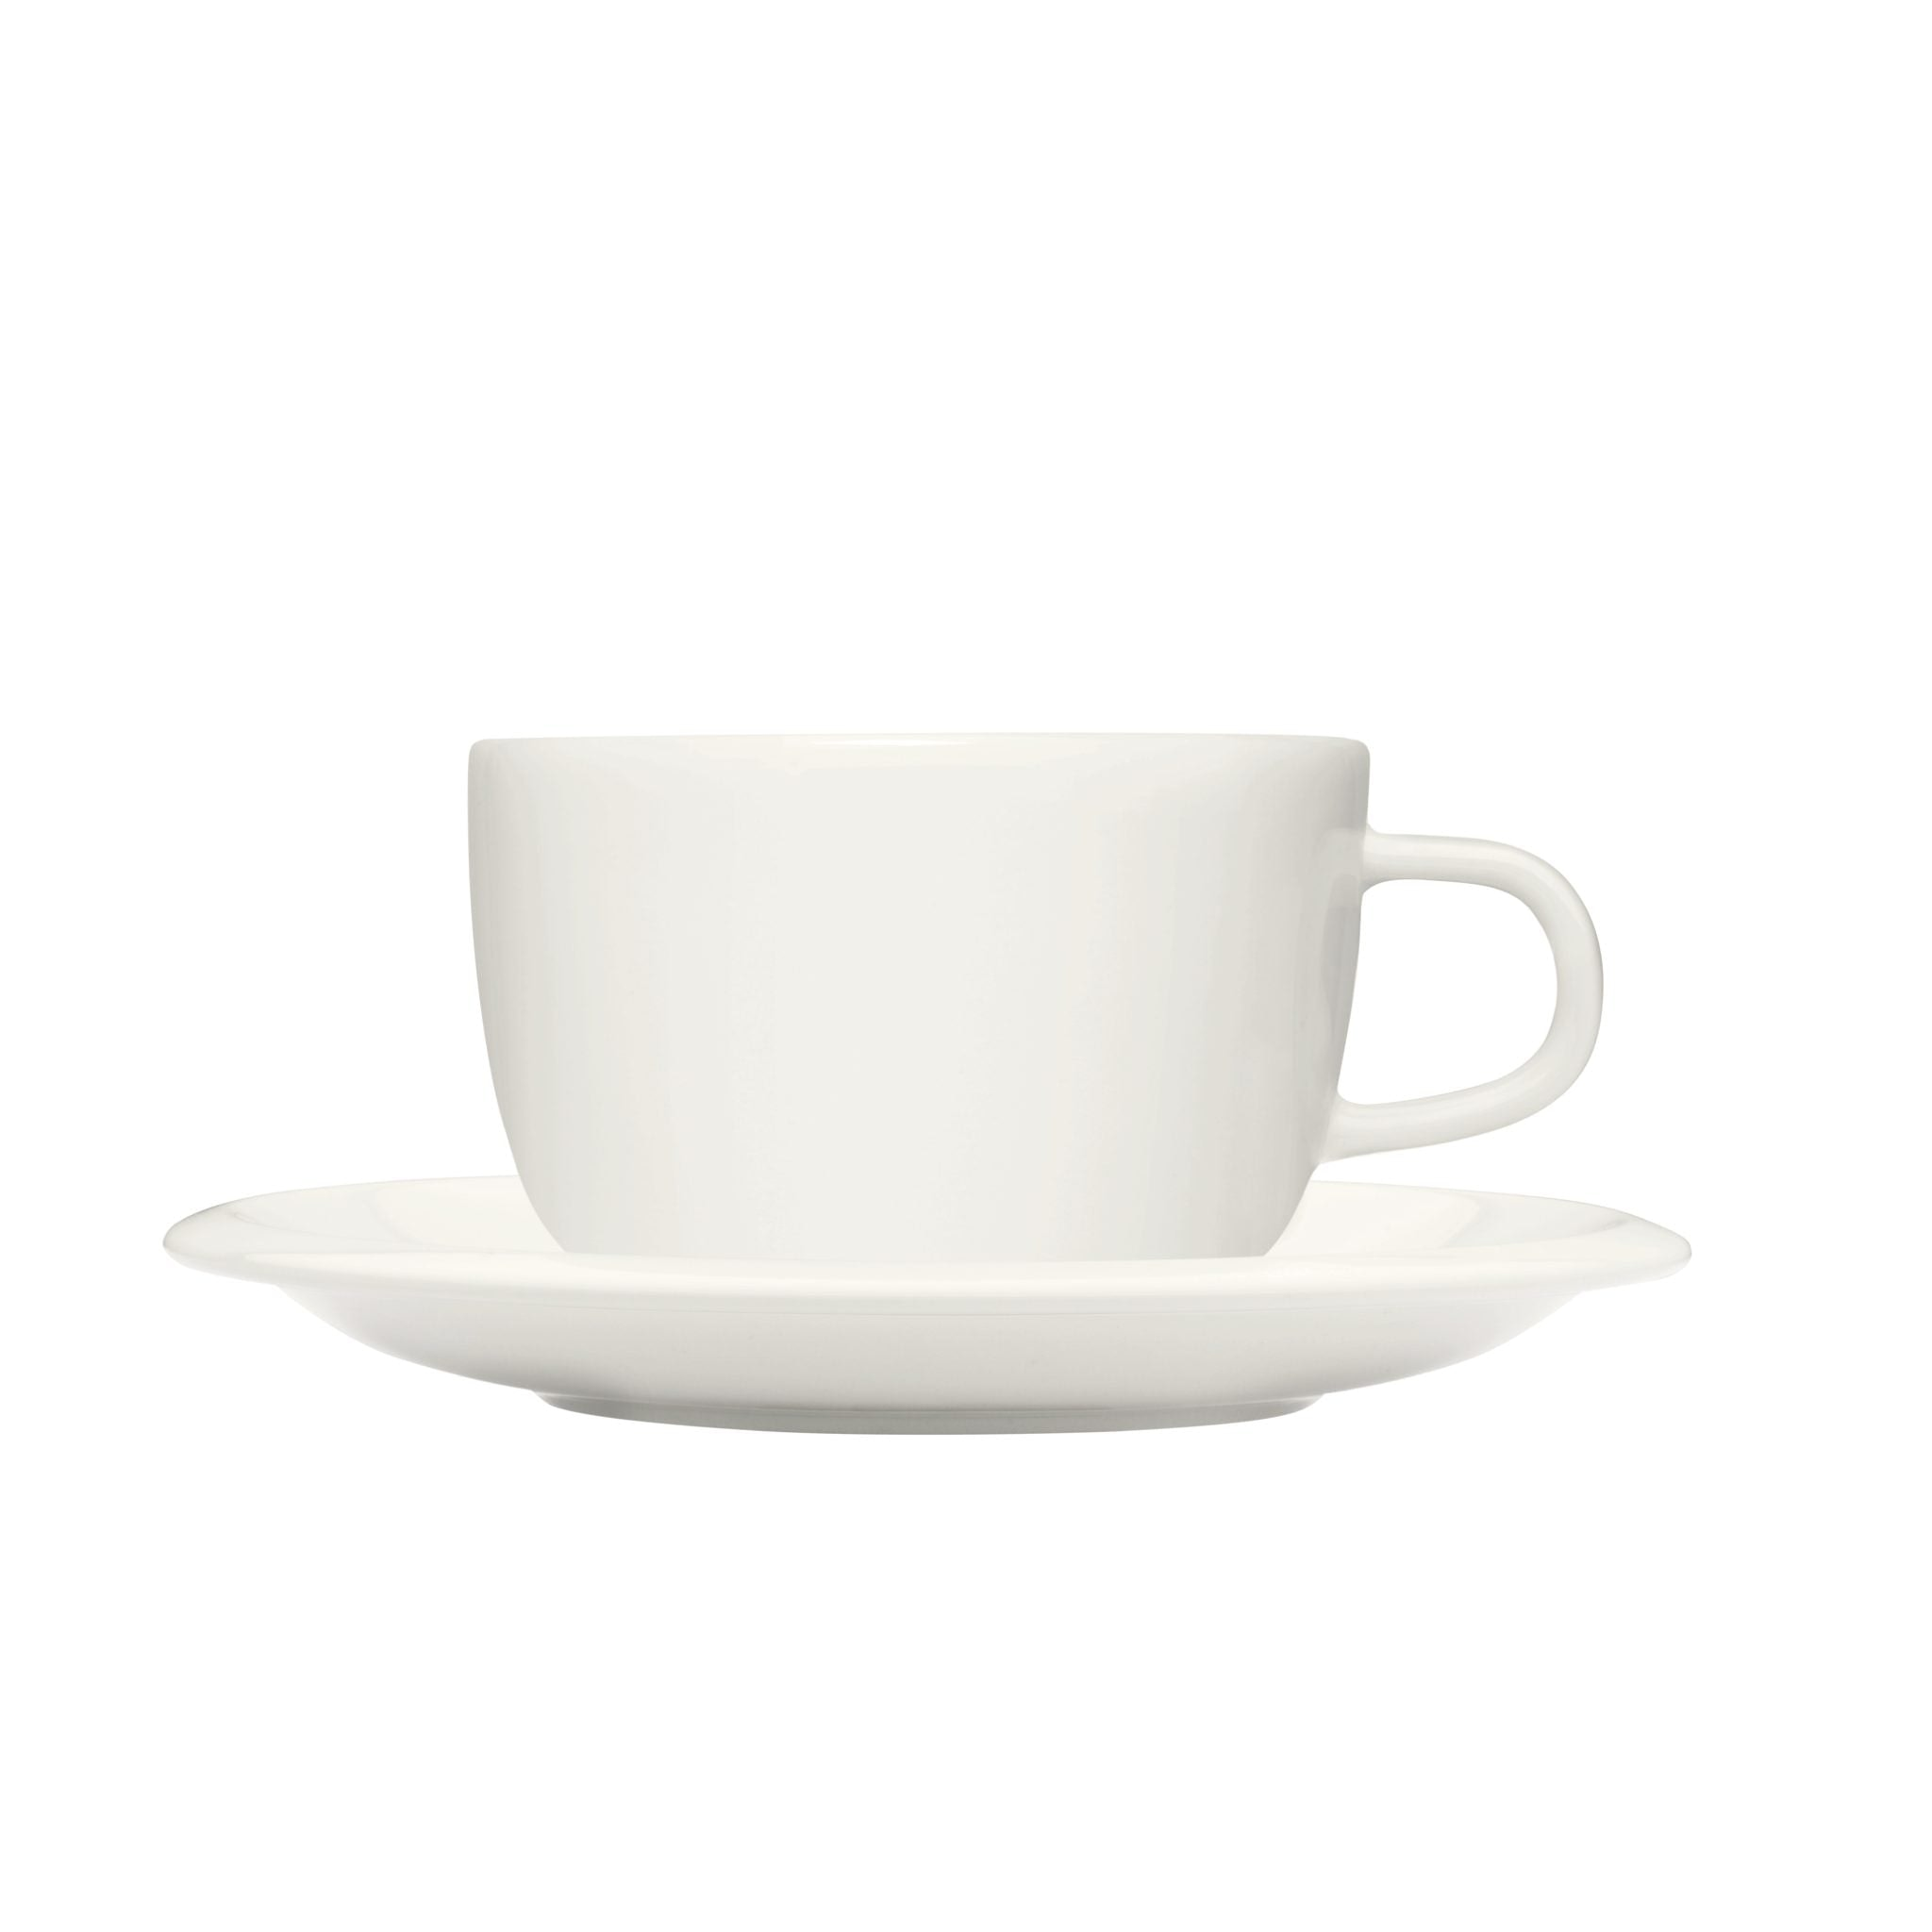 Raami Cup and Saucer by Iittala